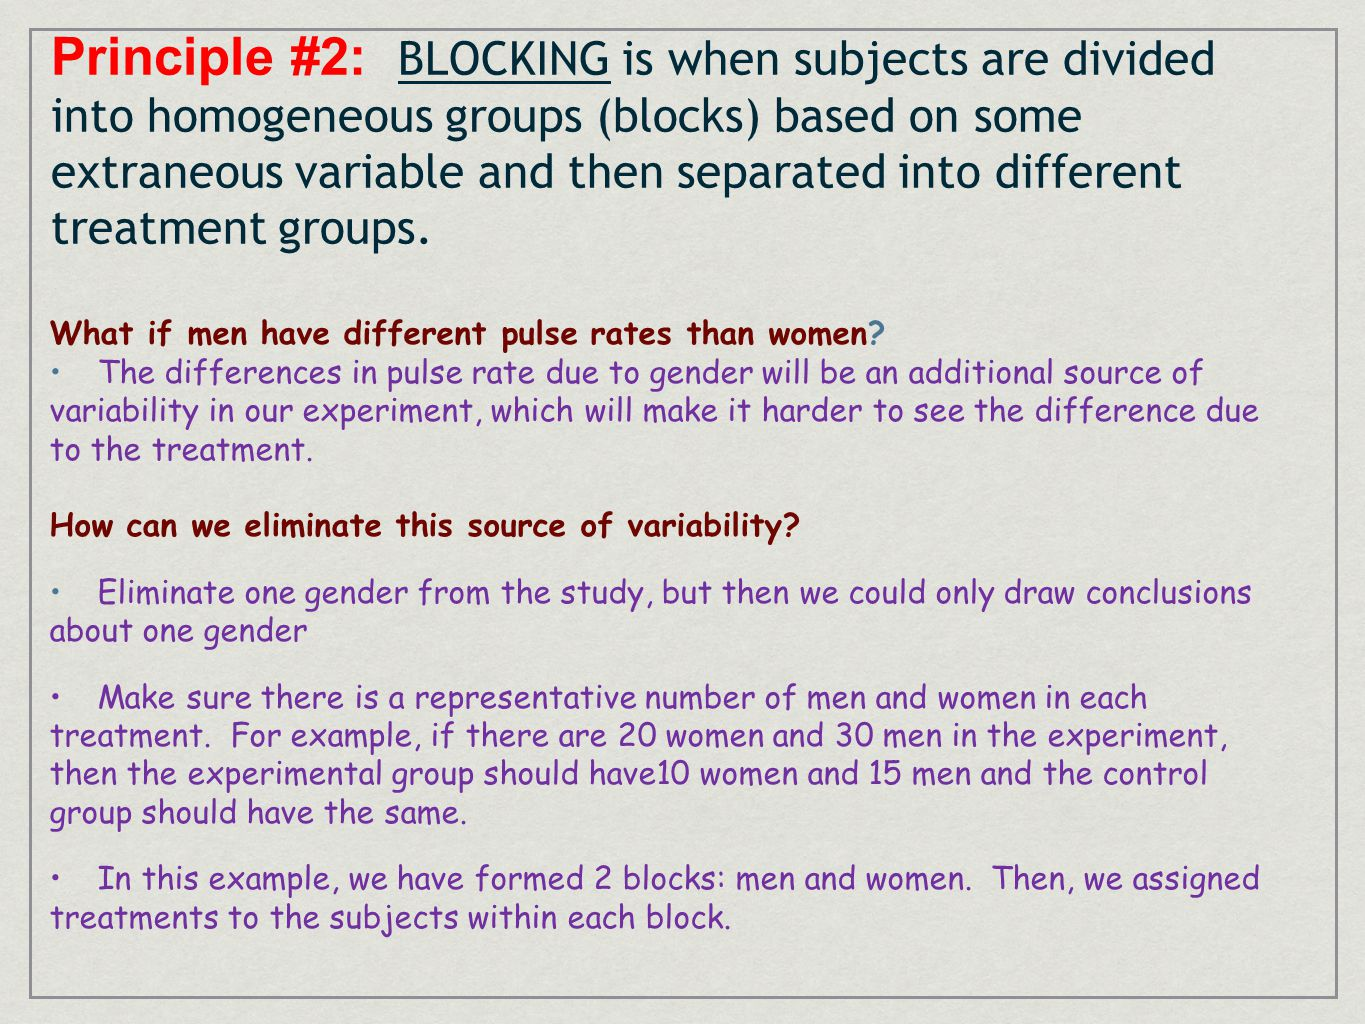 Principle #2: BLOCKING is when subjects are divided into homogeneous groups (blocks) based on some extraneous variable and then separated into different treatment groups.